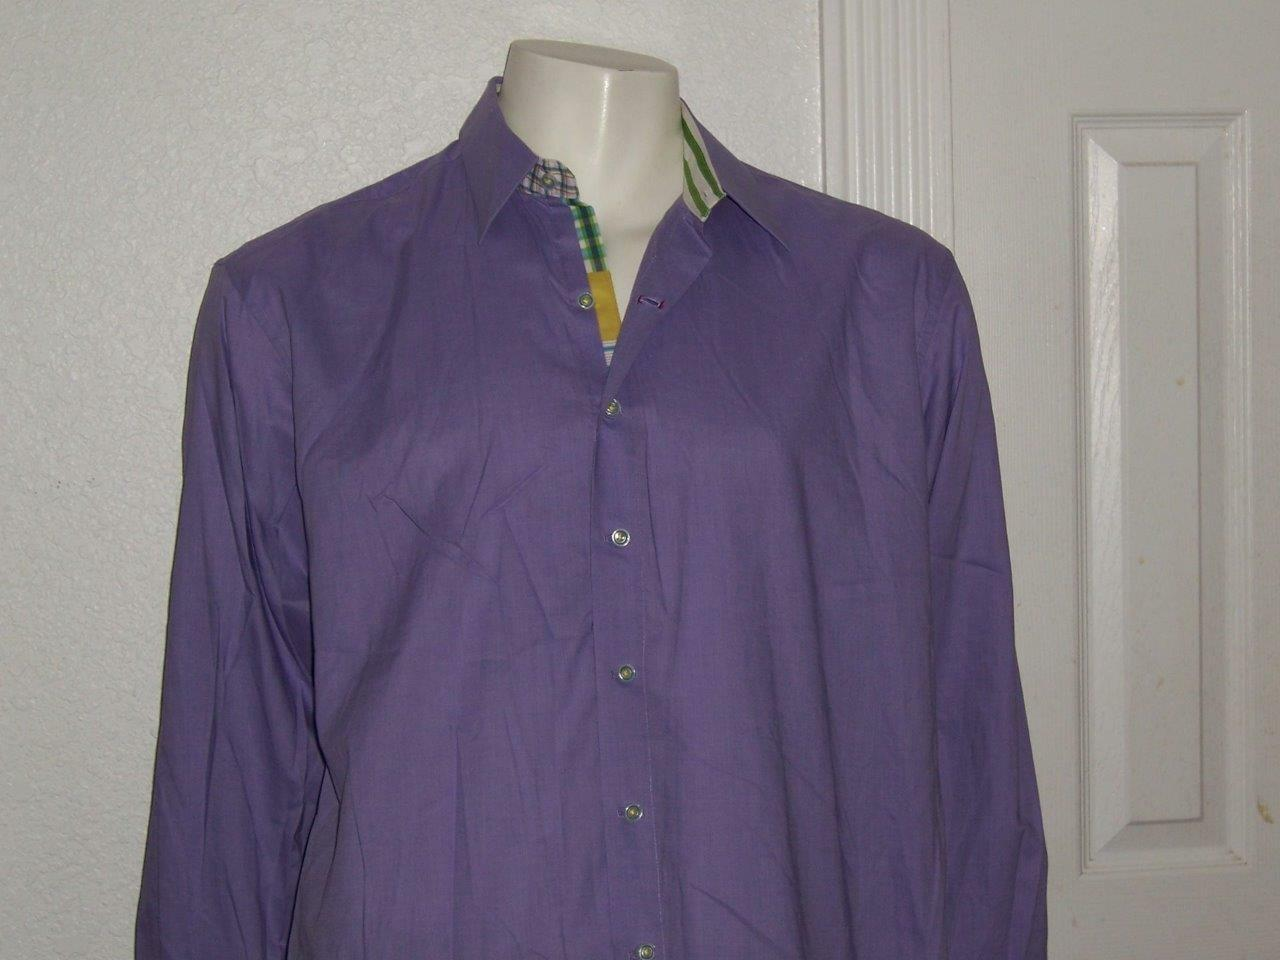 Uomo'S ROBERT GRAHAM LONG X LAVENDER LONG GRAHAM SLEEVE DRESS SHIRT SIZE 2XL eb1671